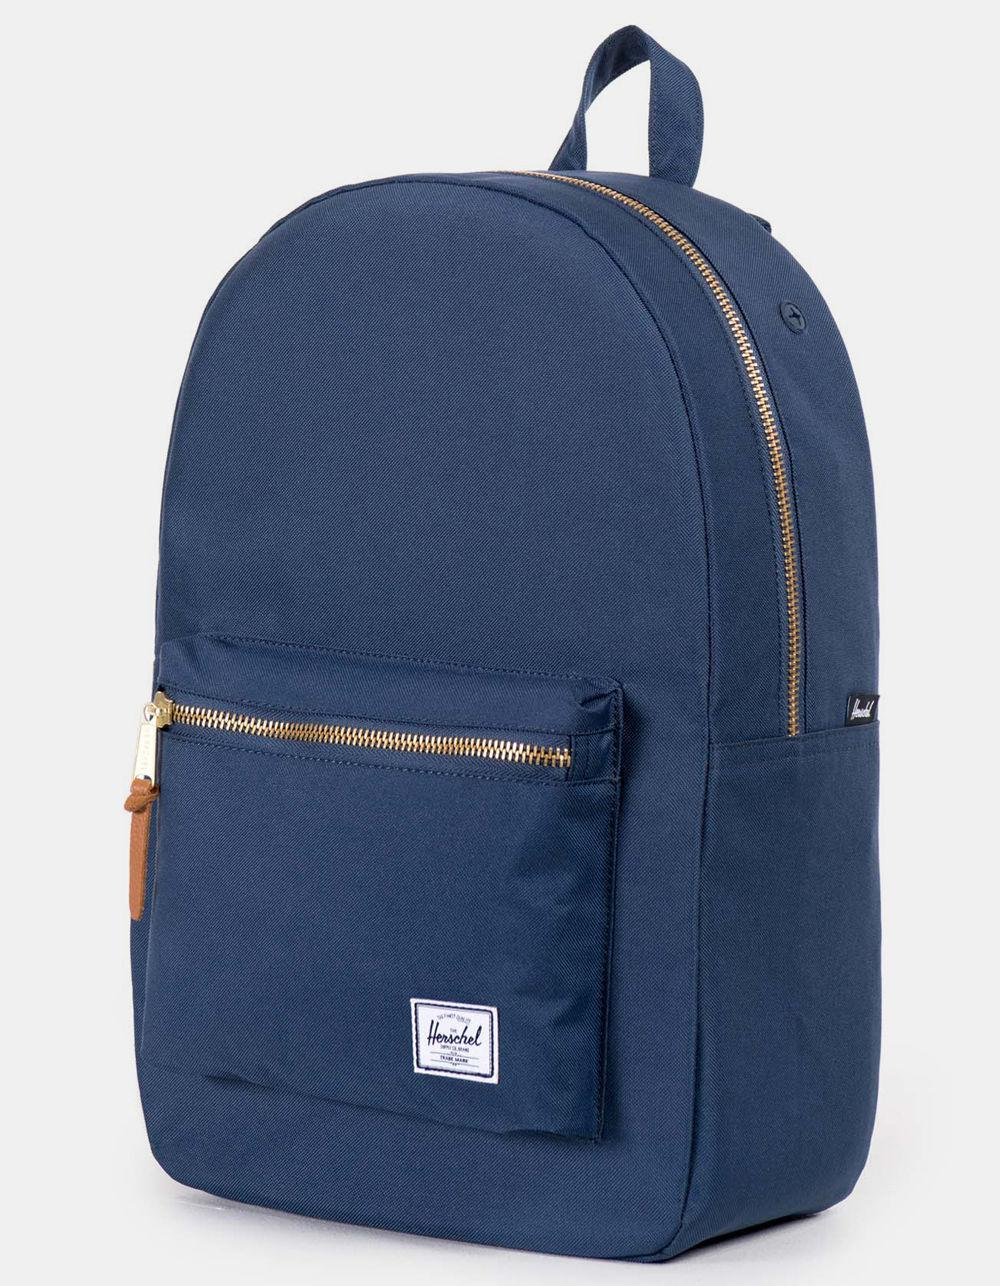 f1fab86116c6 Lyst - Herschel Supply Co. Settlement Navy Backpack in Blue for Men - Save  28.813559322033896%